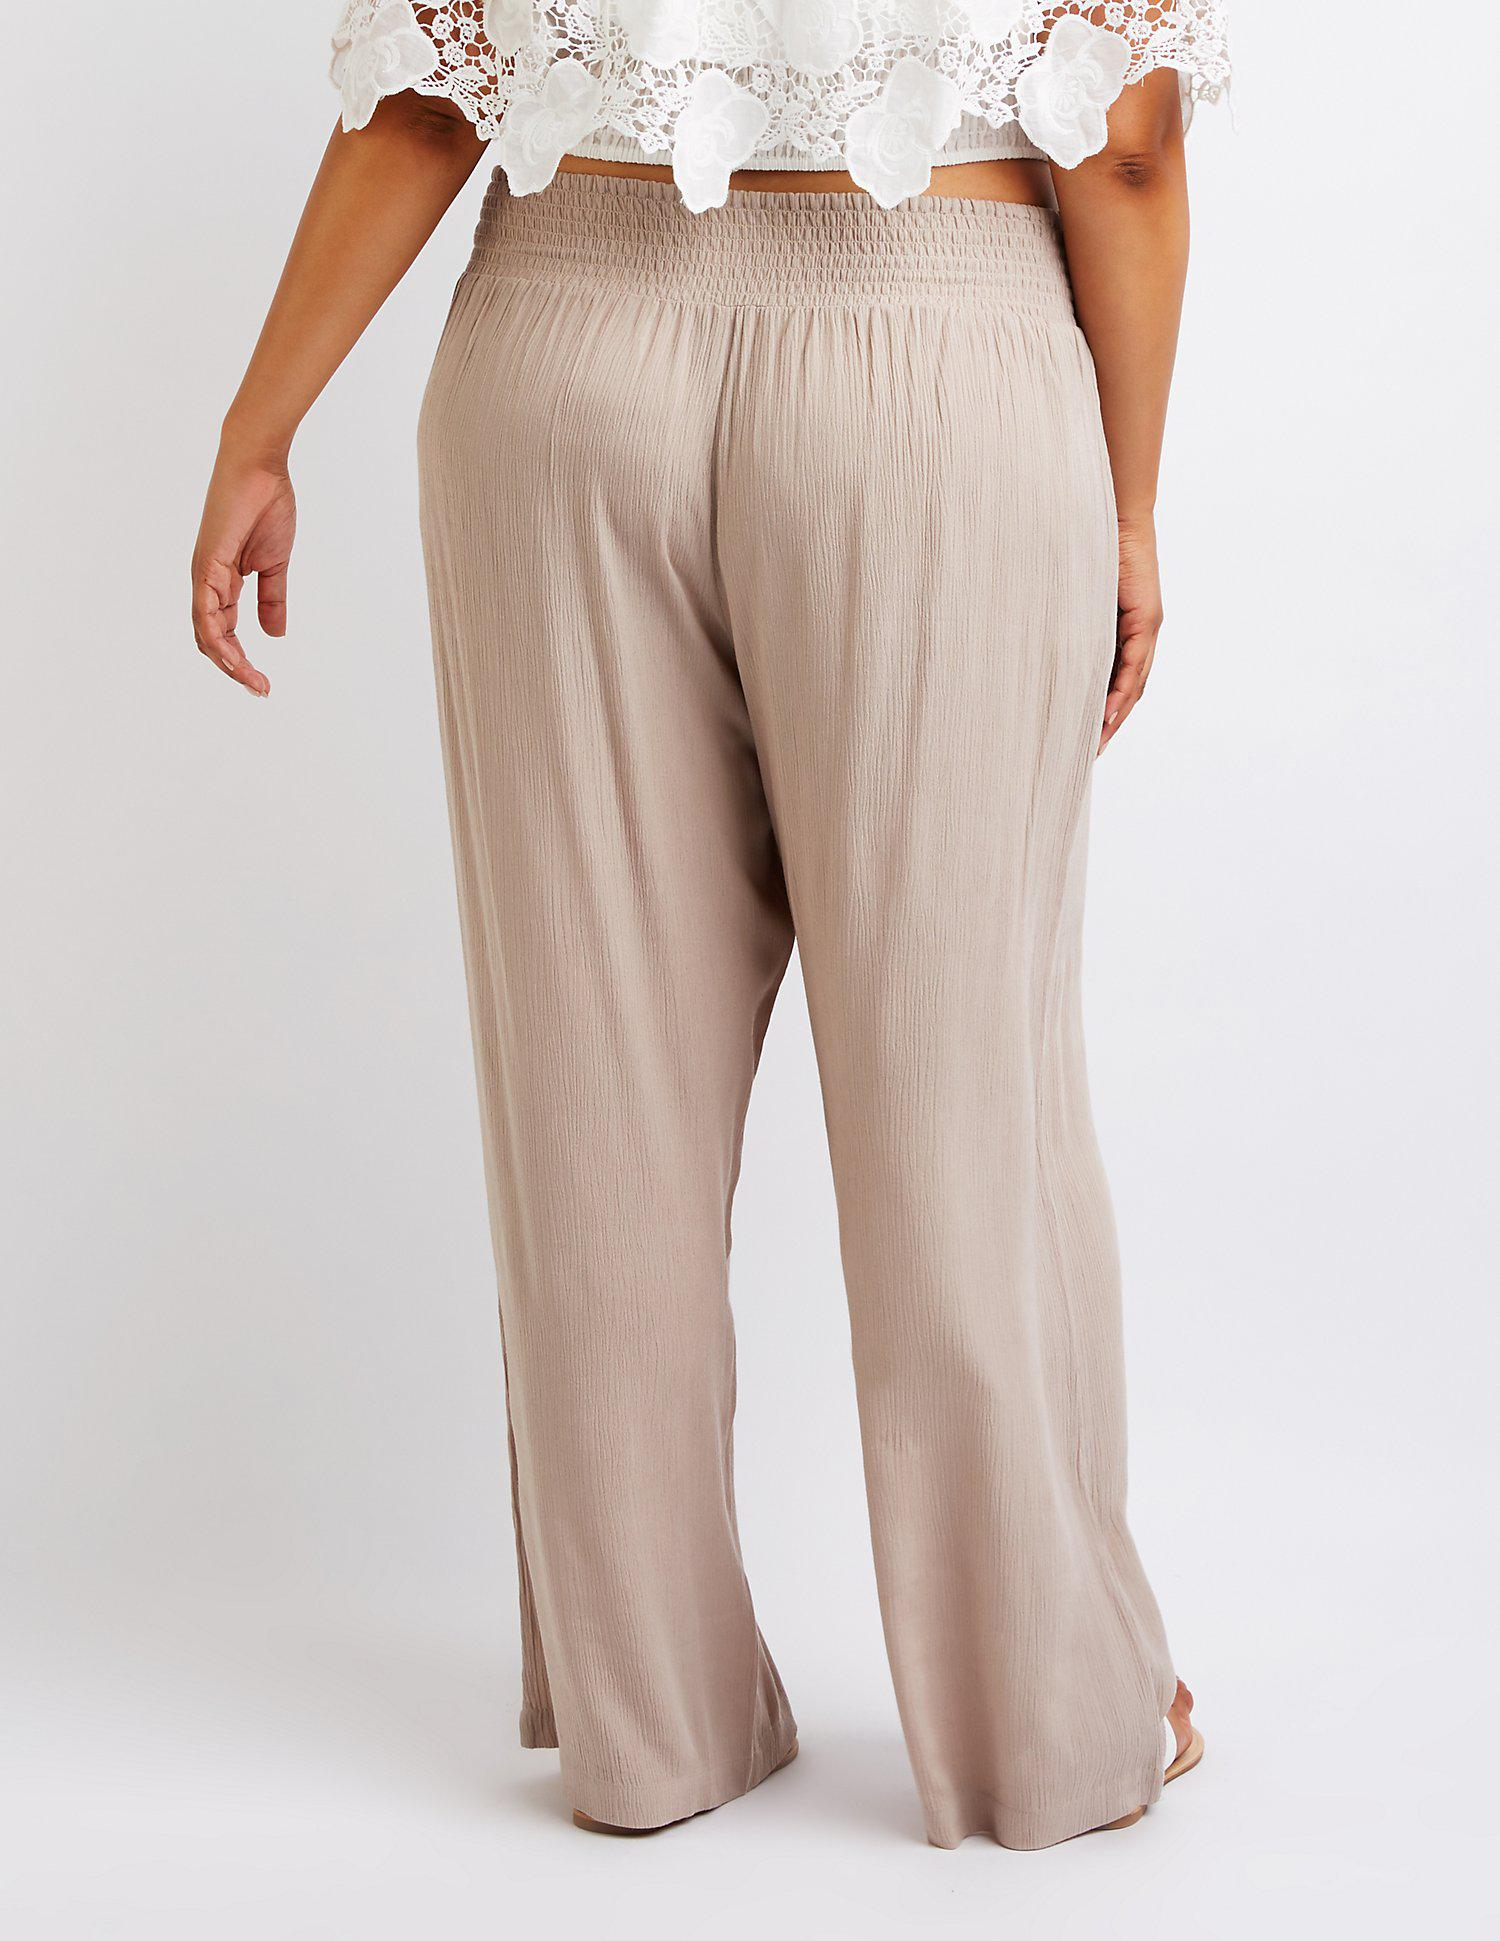 9135bce28d648 Charlotte Russe - Multicolor Plus Size Smocked Palazzo Pants - Lyst. View  fullscreen